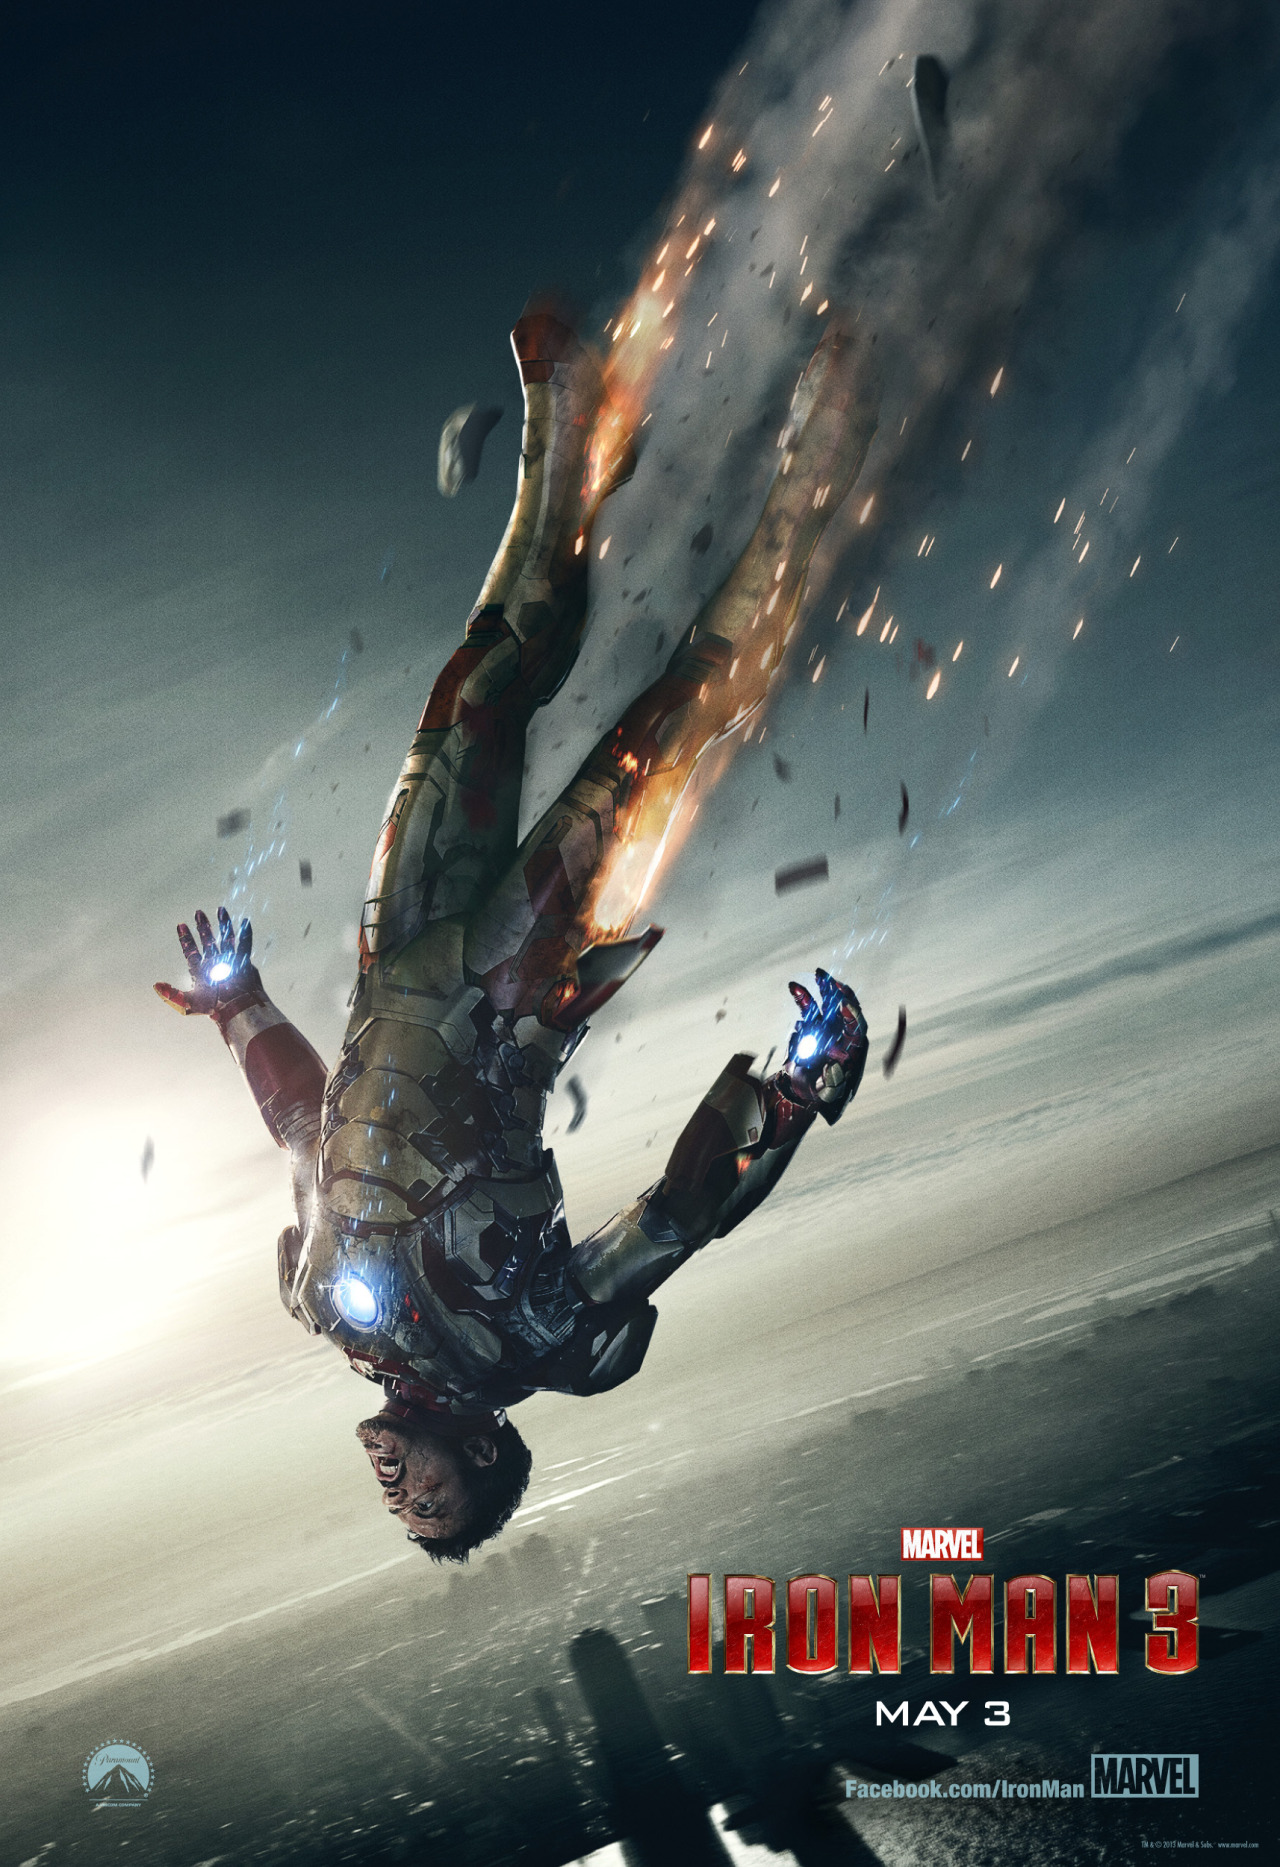 Right on the heels of a new Iron Man 3 trailer dropping Super Bowl sunday. Marvel drops a new poster for the flick and it's not looking to good for Mr. Stark.